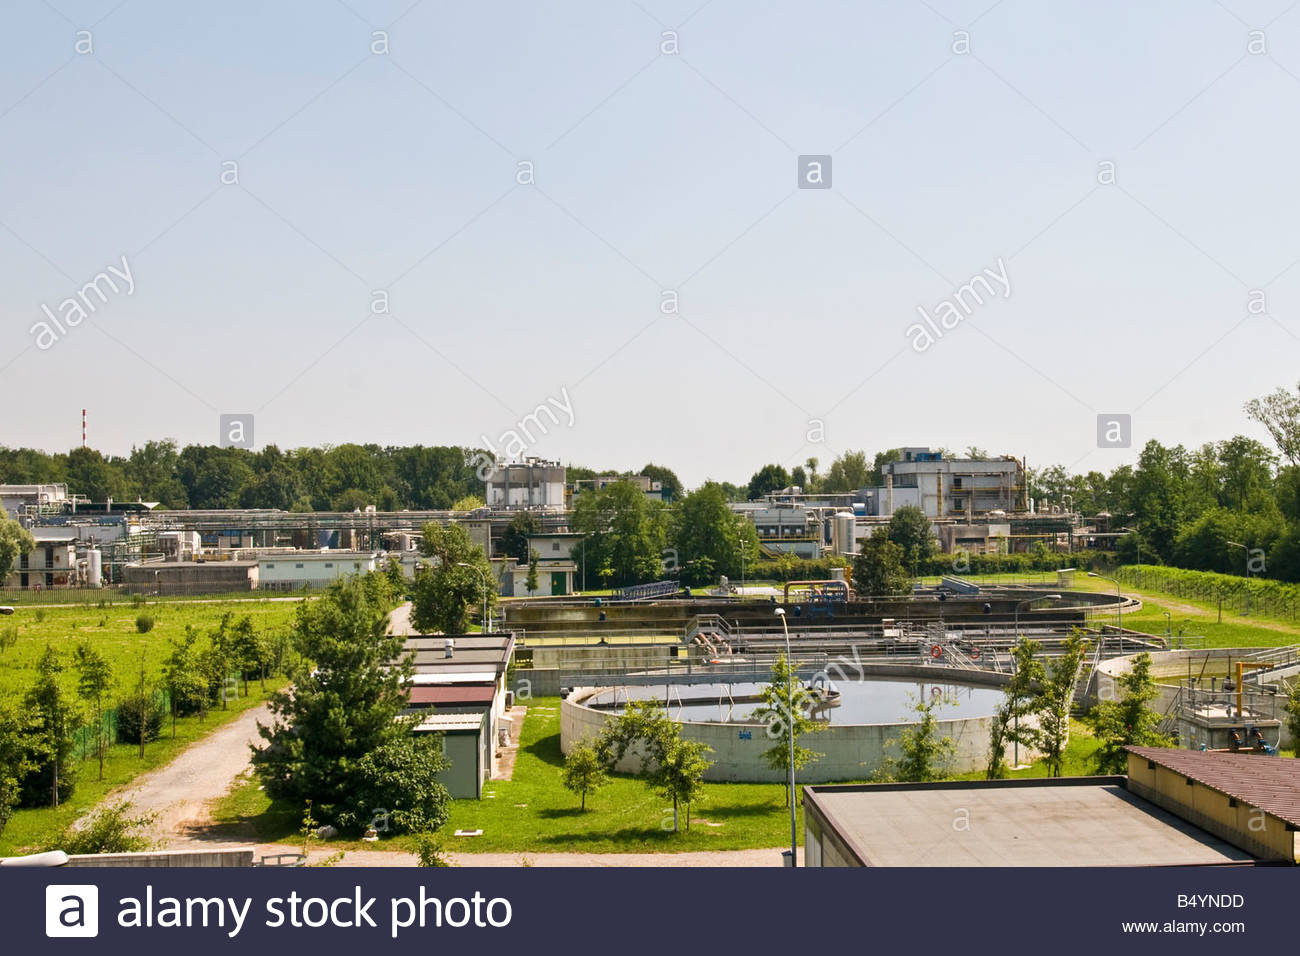 purification water plant,origgio,lombardia,italy - Stock Image